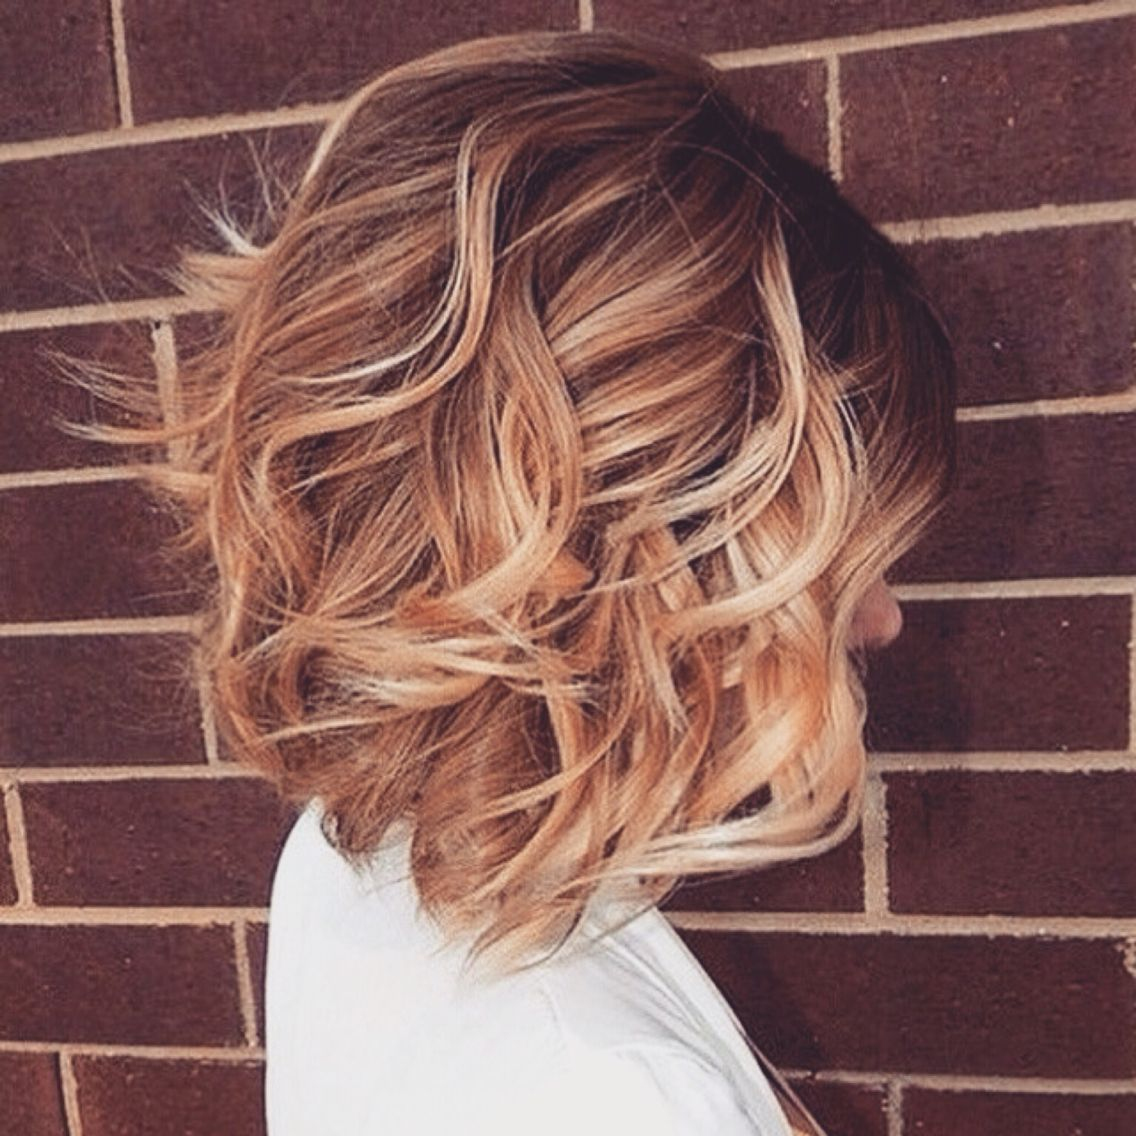 Cute Bob Waveseasy For A On The Go For Those Who Don T Want To Spend Hours On Their Hairtip Works Better If You H Hair Styles Wavy Bob Haircuts Bob Hair